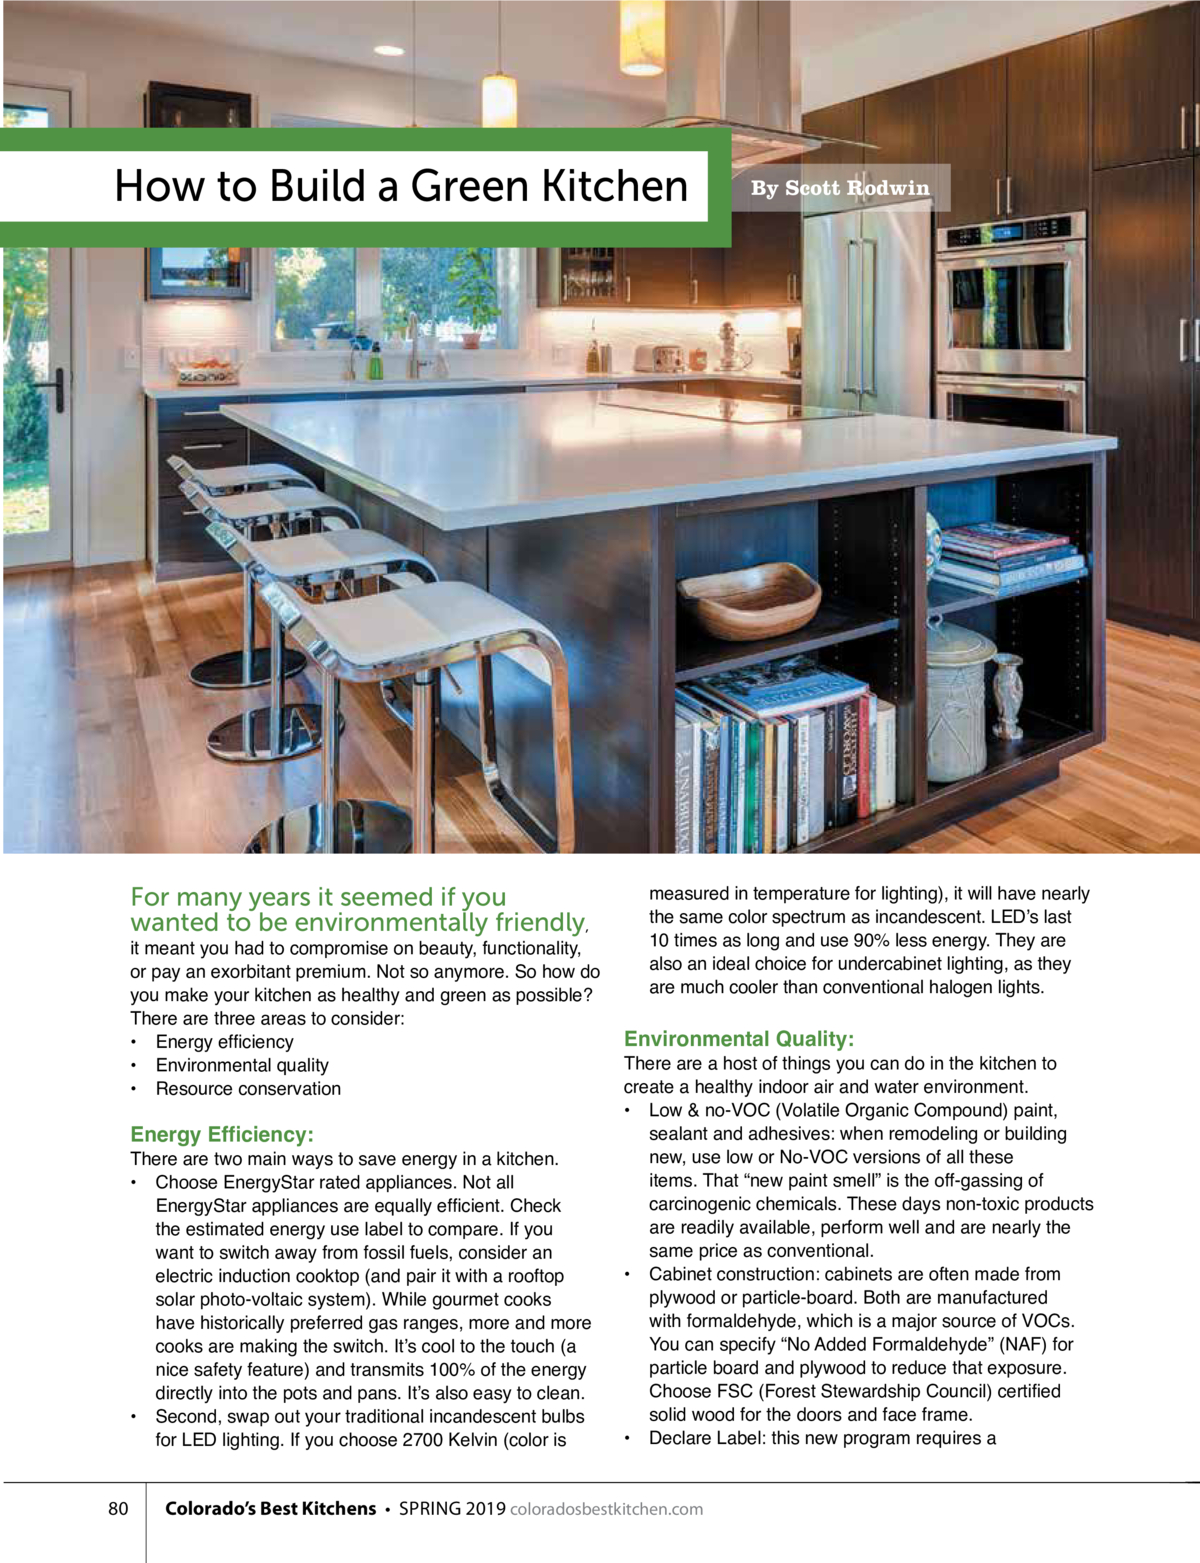 Article Colorado's Best Kitchens Spring 2019 _Page_1.jpg